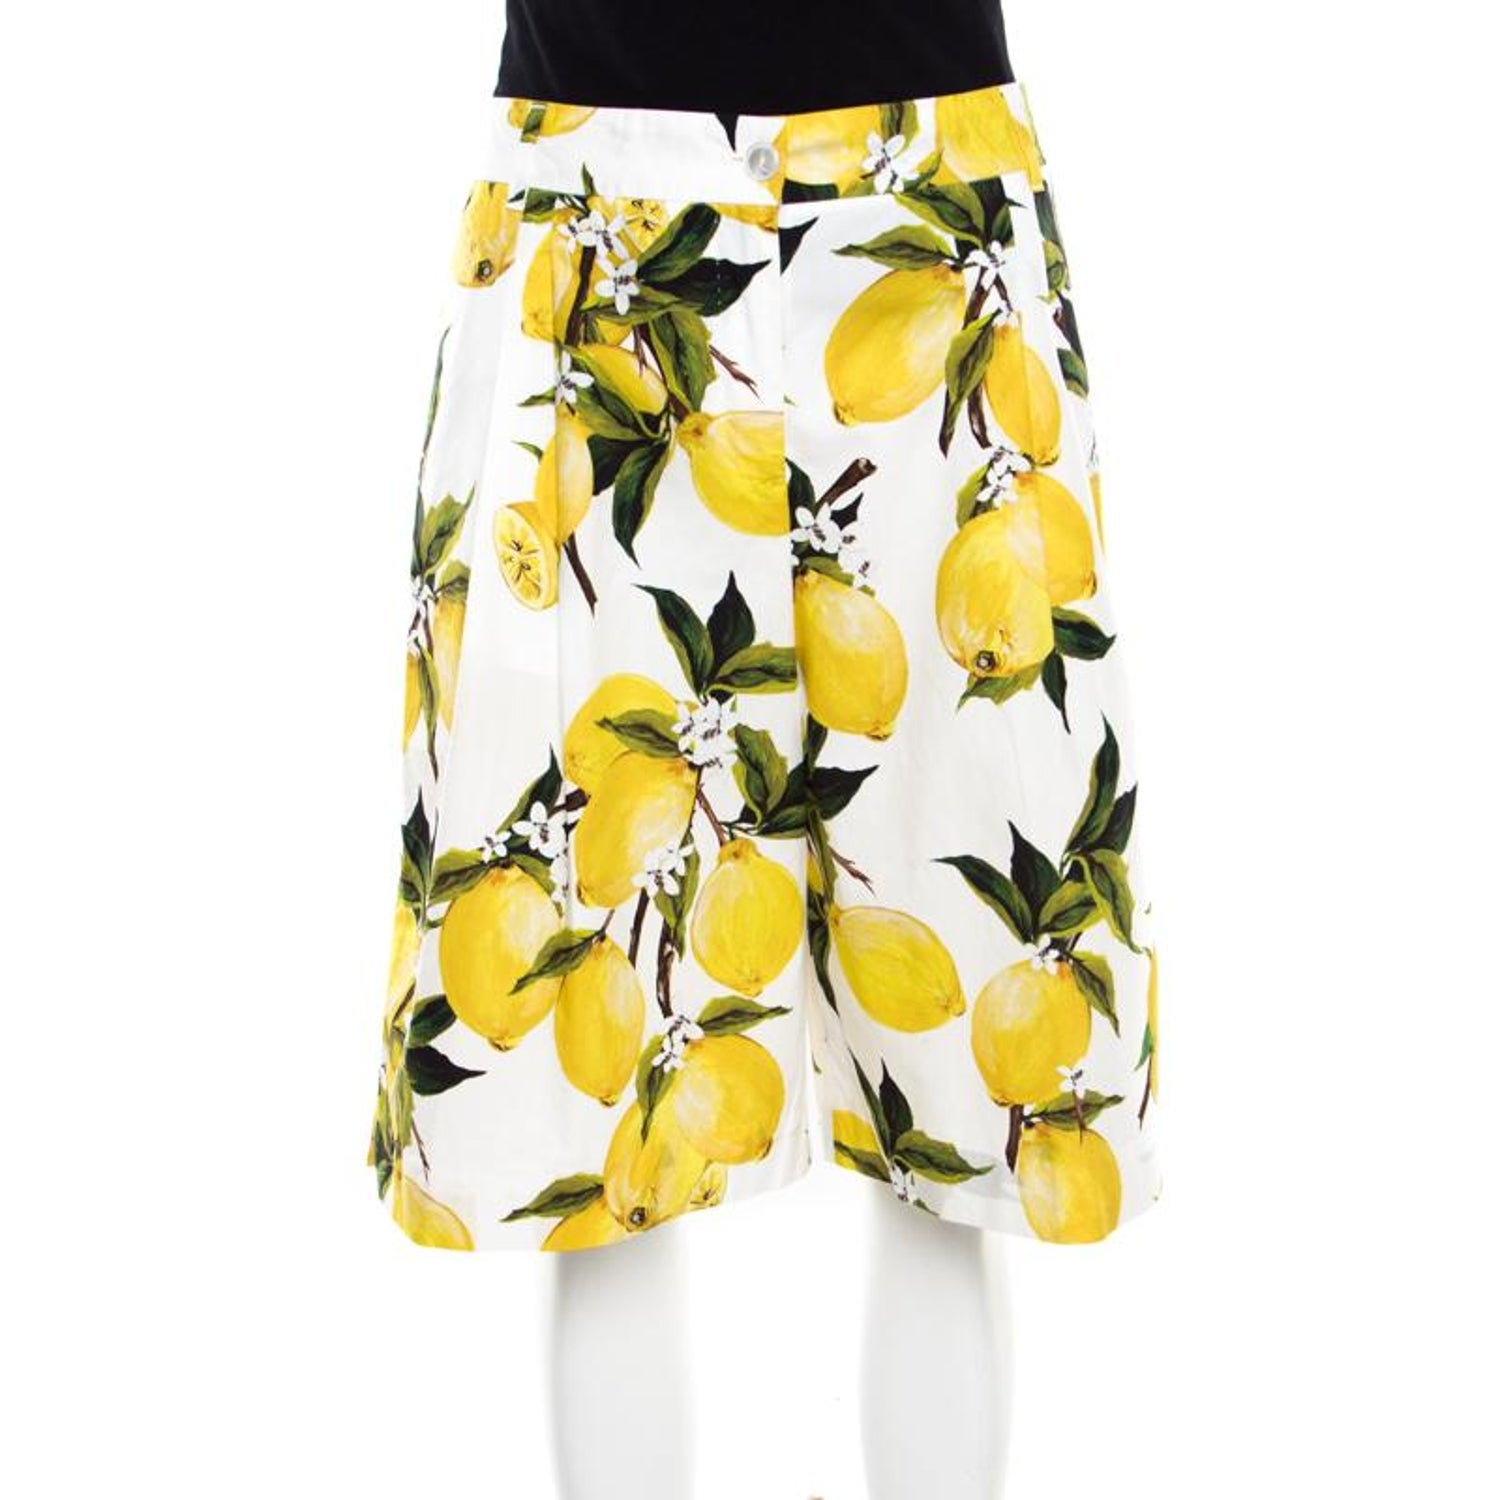 eff612393e55b Dolce and Gabbana White Lemon and Floral Printed Cotton Bermuda Shorts S  For Sale at 1stdibs